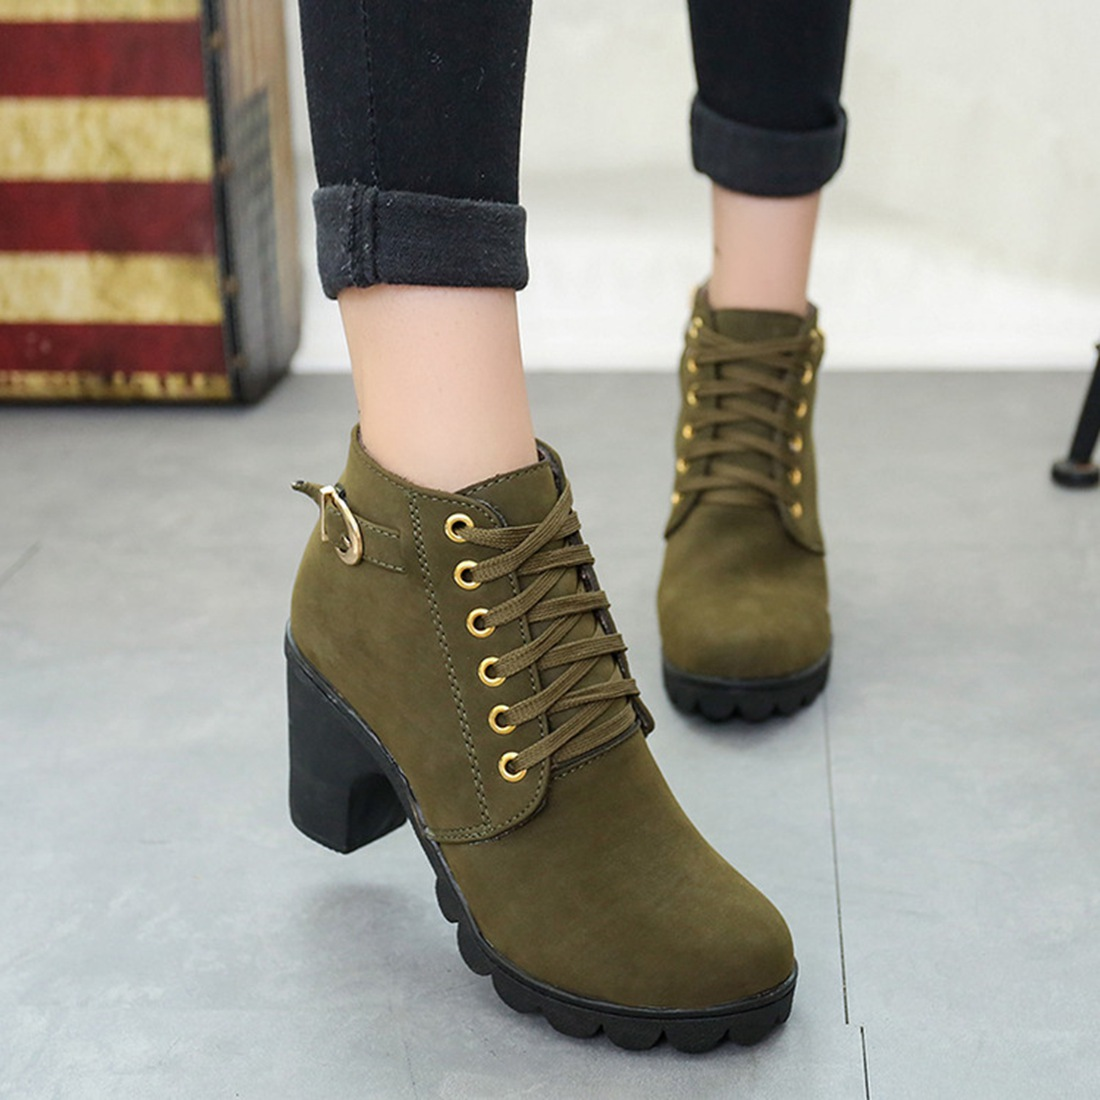 ankle women Boots winter snow boots High Quality solid lace-up ladies PU fashion shoes Knight Martin Retro Korean short boots only true love high quality women boots winter snow boots